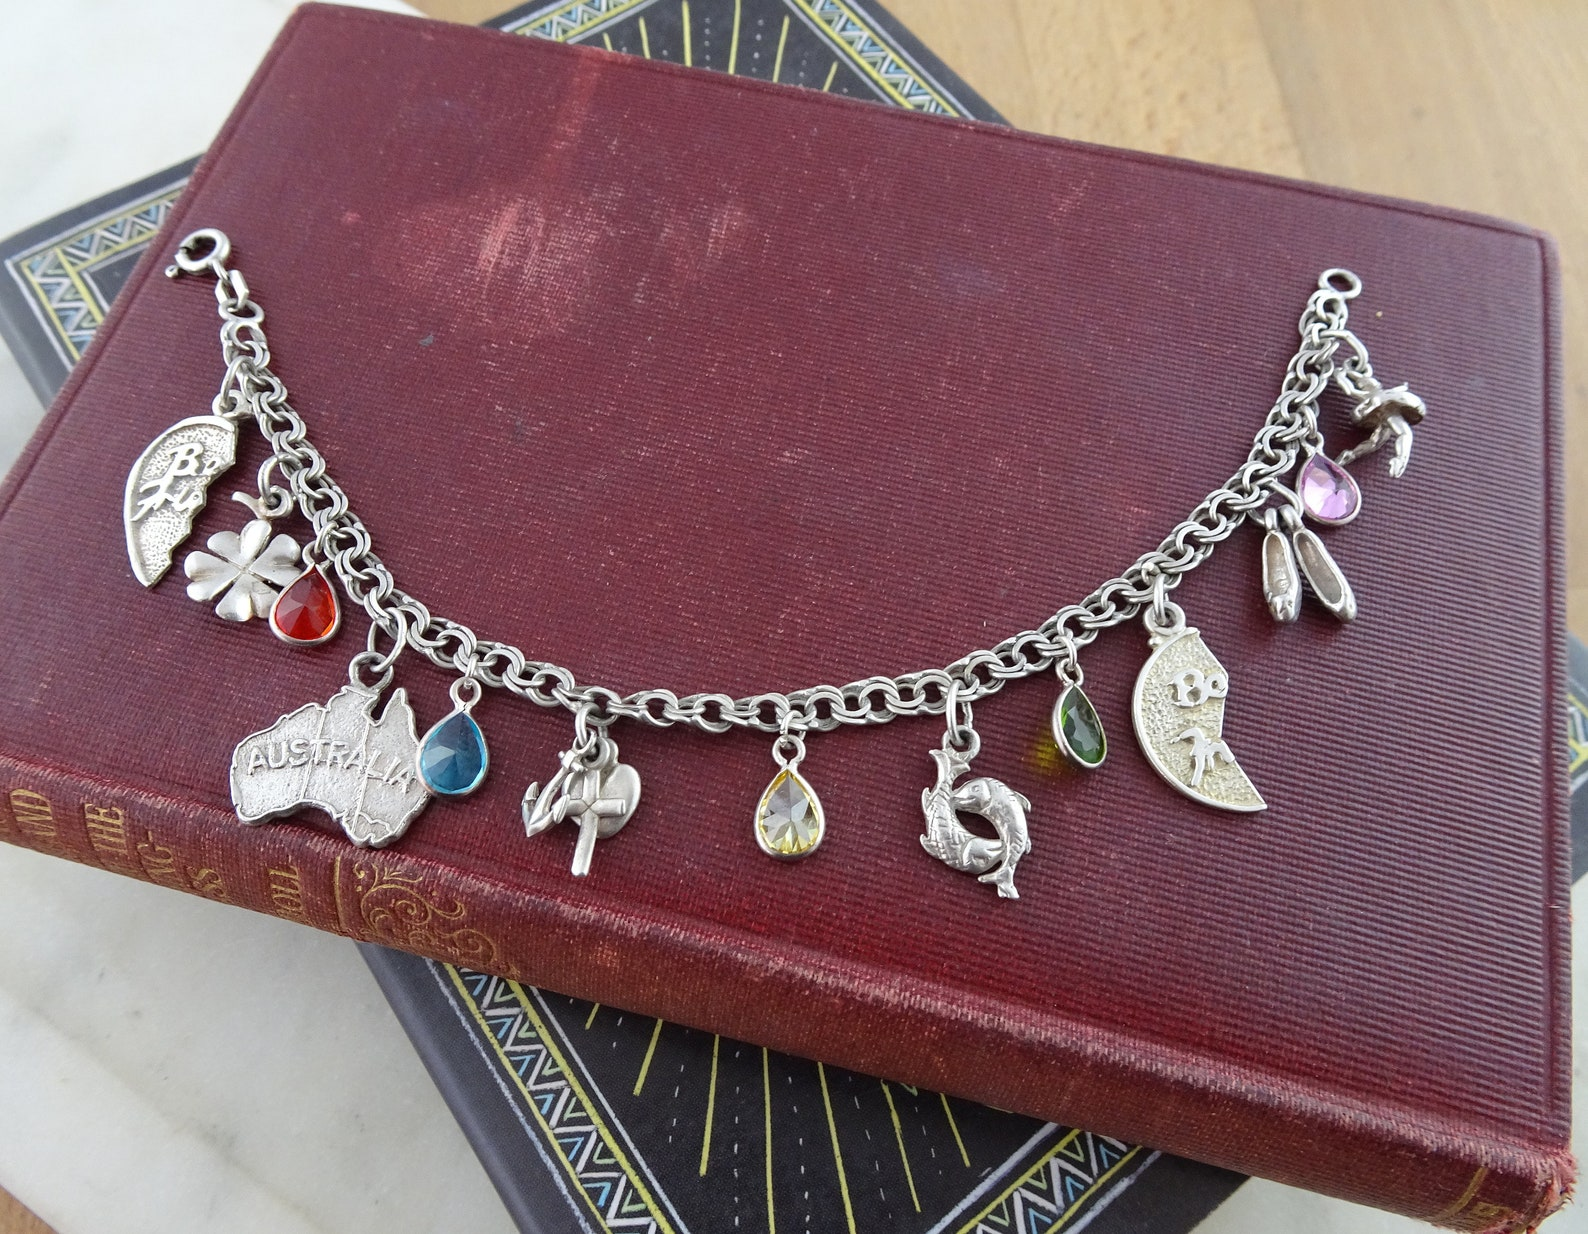 vintage sterling silver charm bracelet, novelty charm bracelet, lots of fun charms, ballet dancer, shoes, map of australia